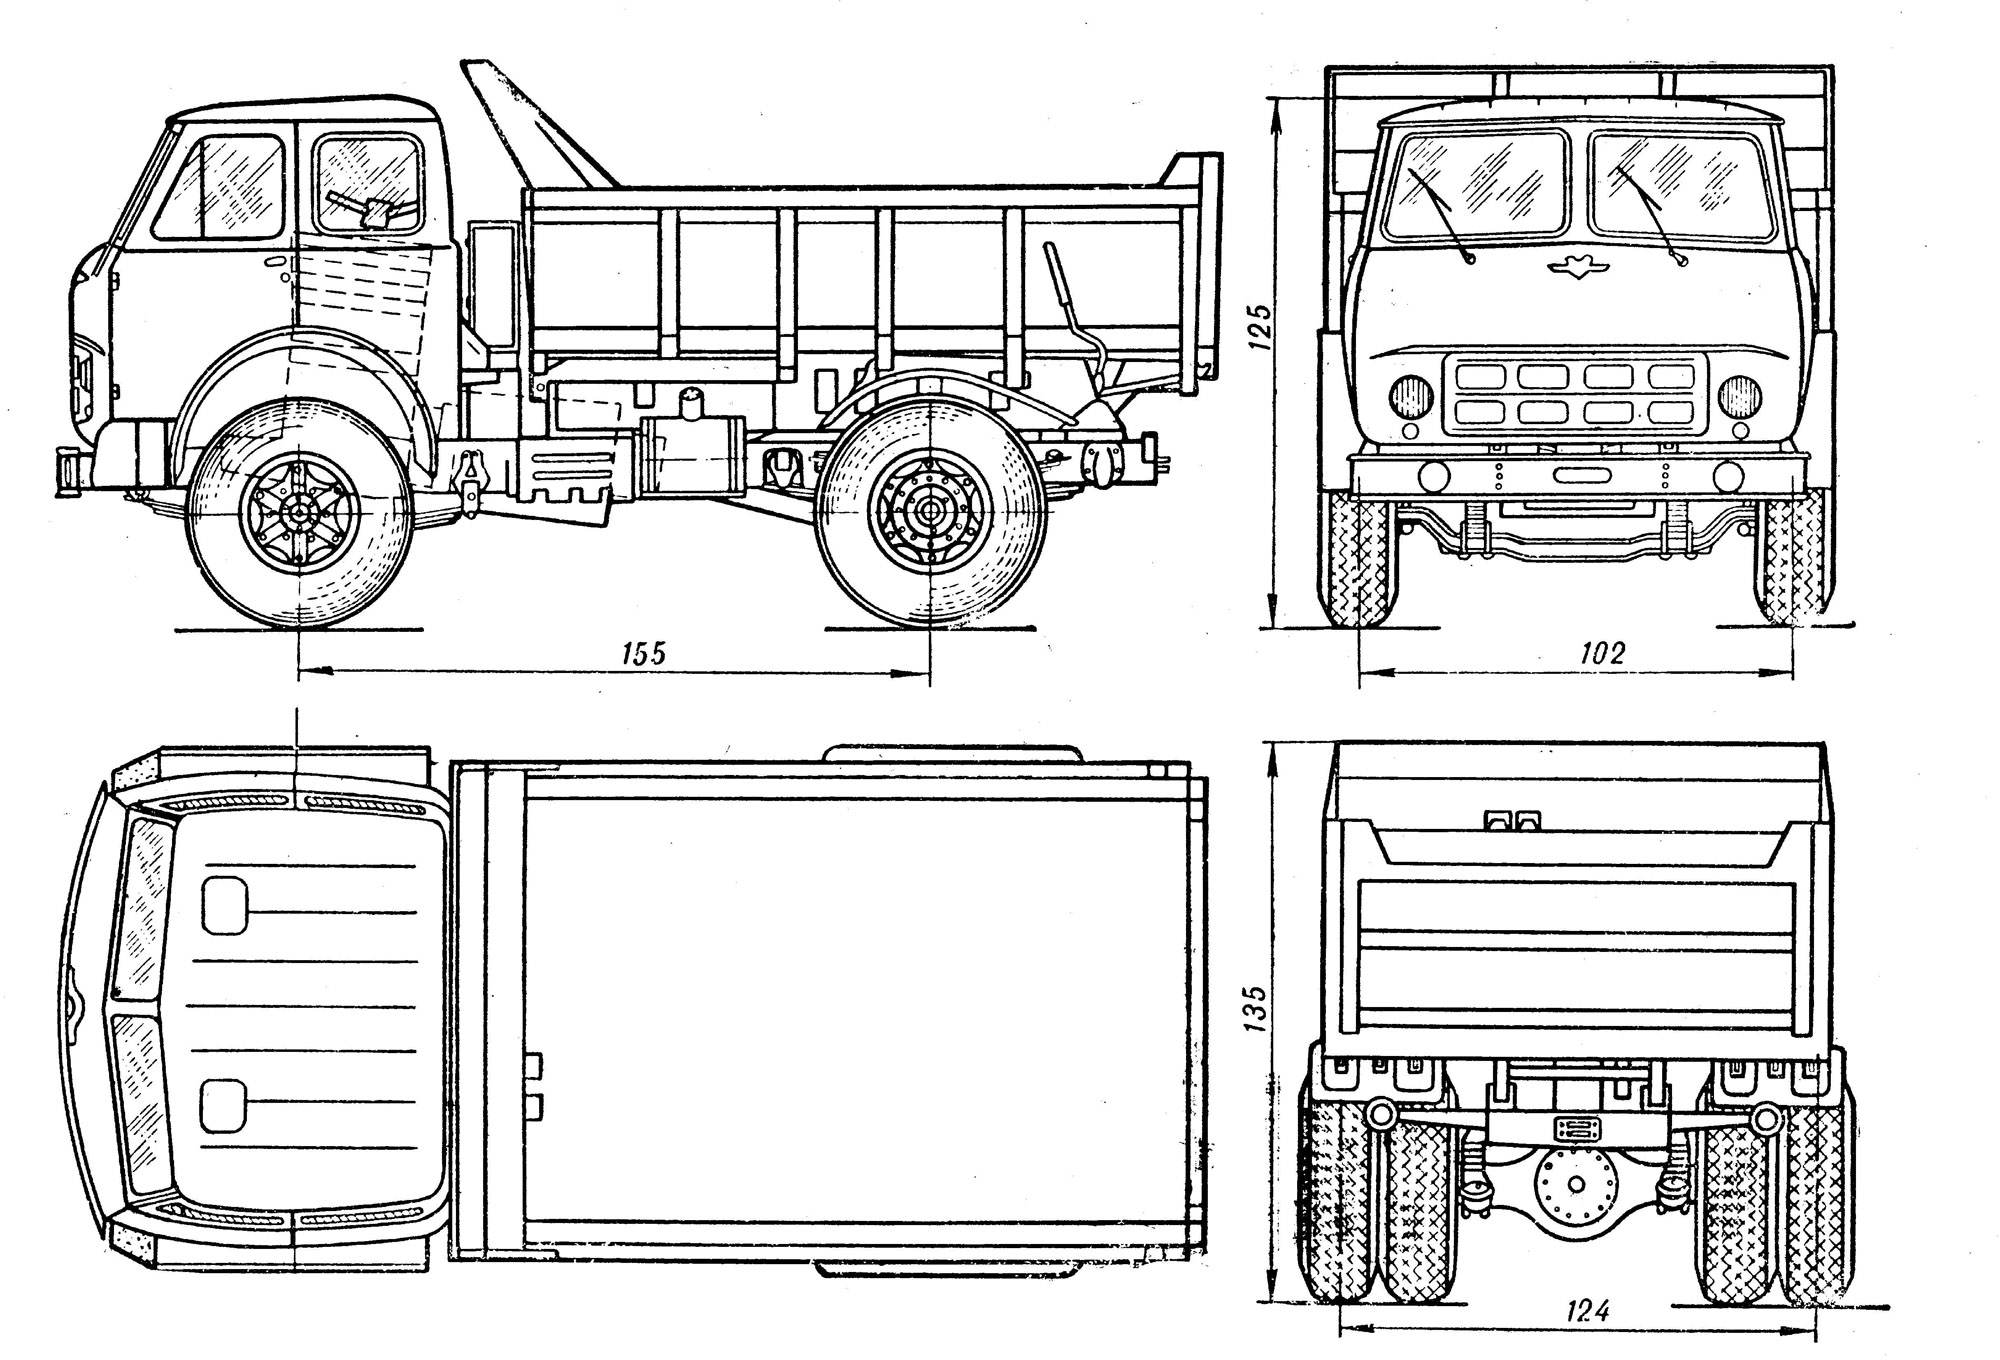 Maz 503 Blueprint